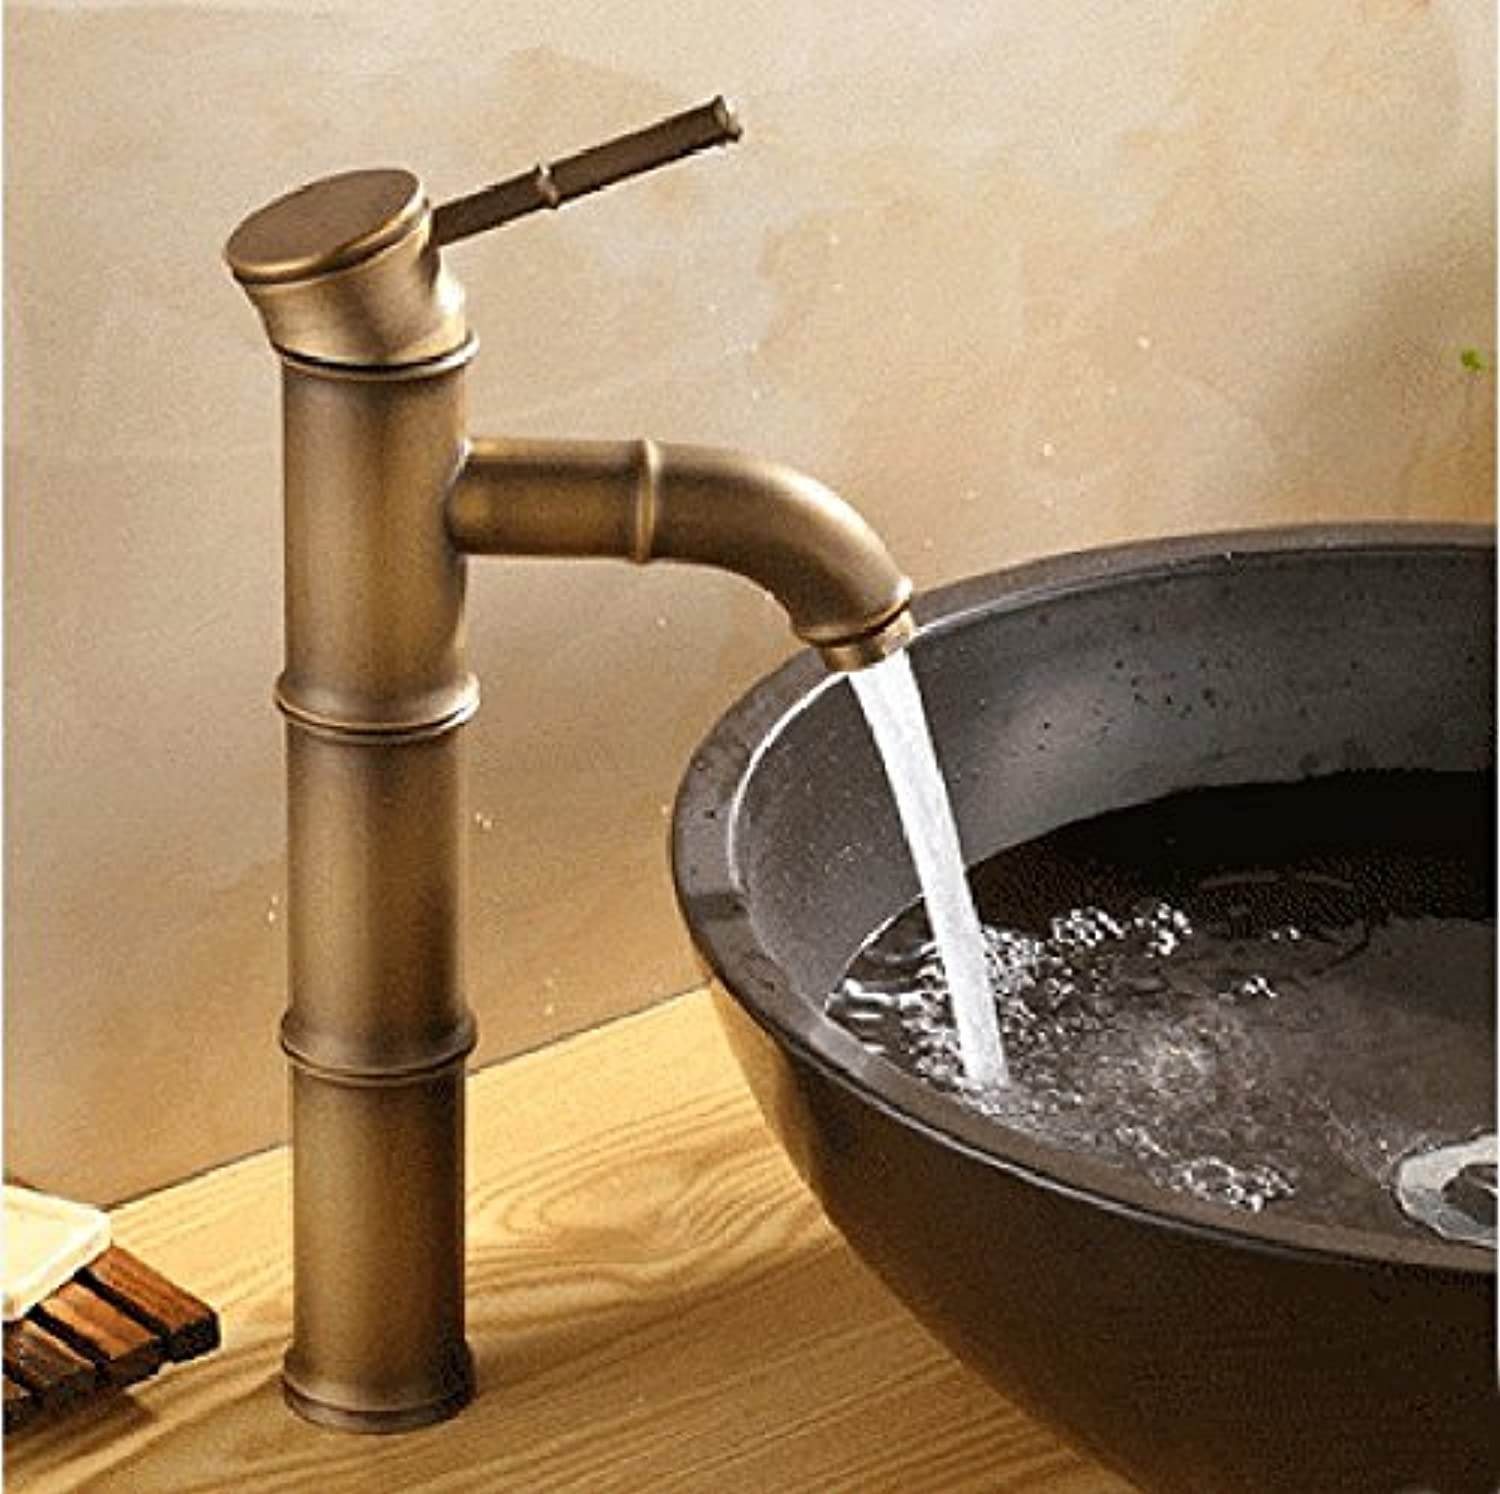 Hlluya Professional Sink Mixer Tap Kitchen Faucet, Hot and cold, a vanity area with sink and faucet